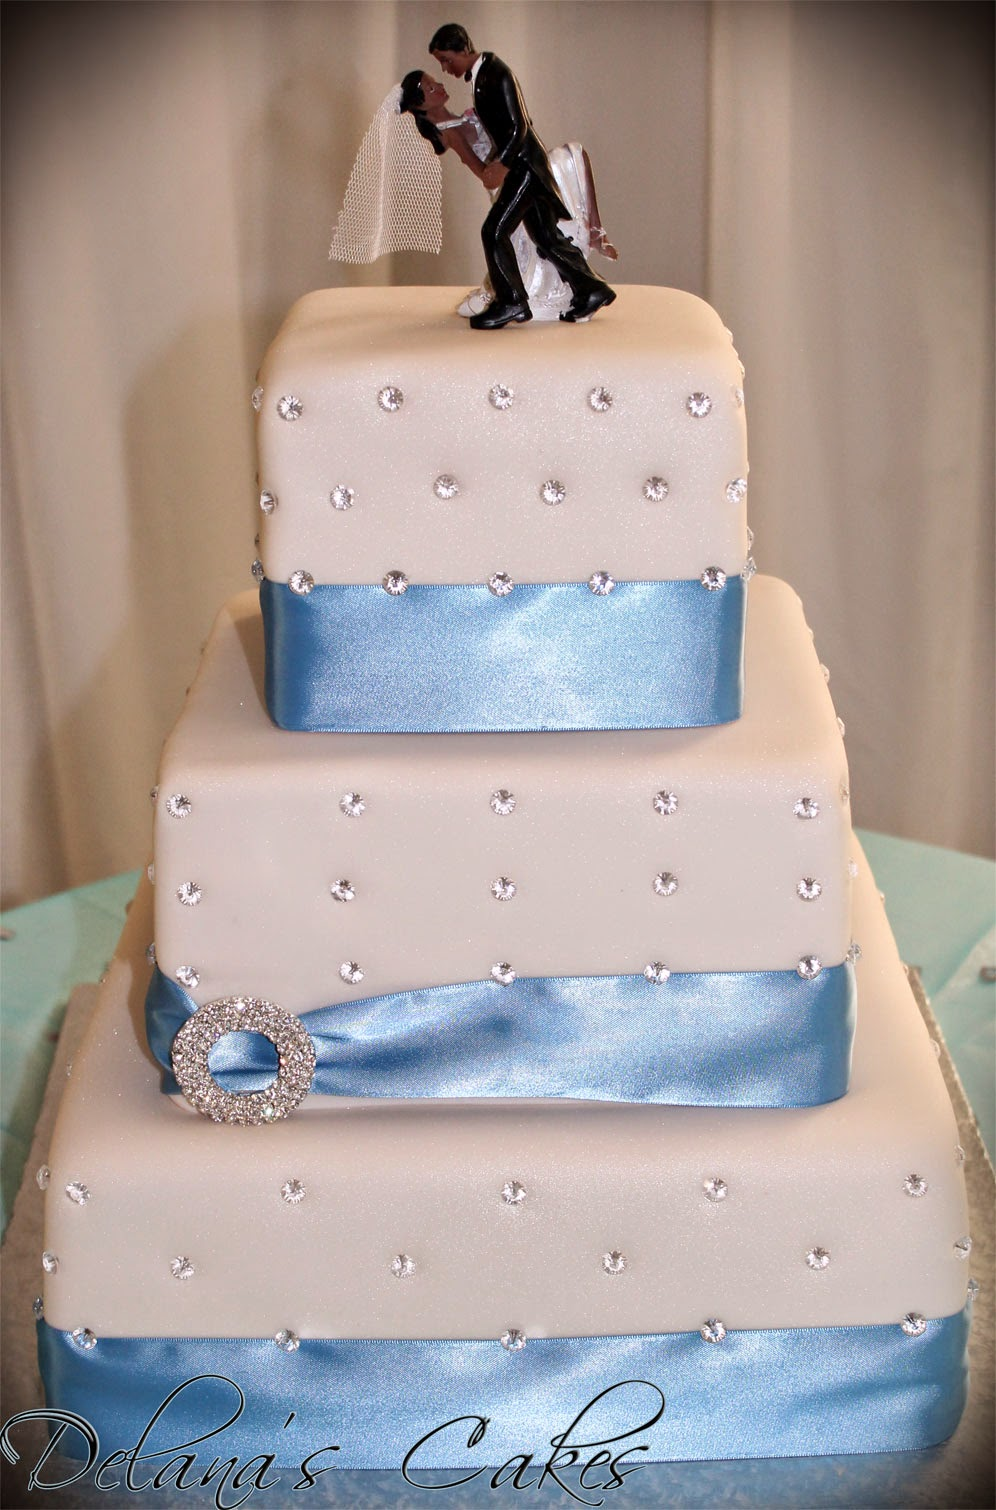 Delanas Cakes Diamante Wedding Cake